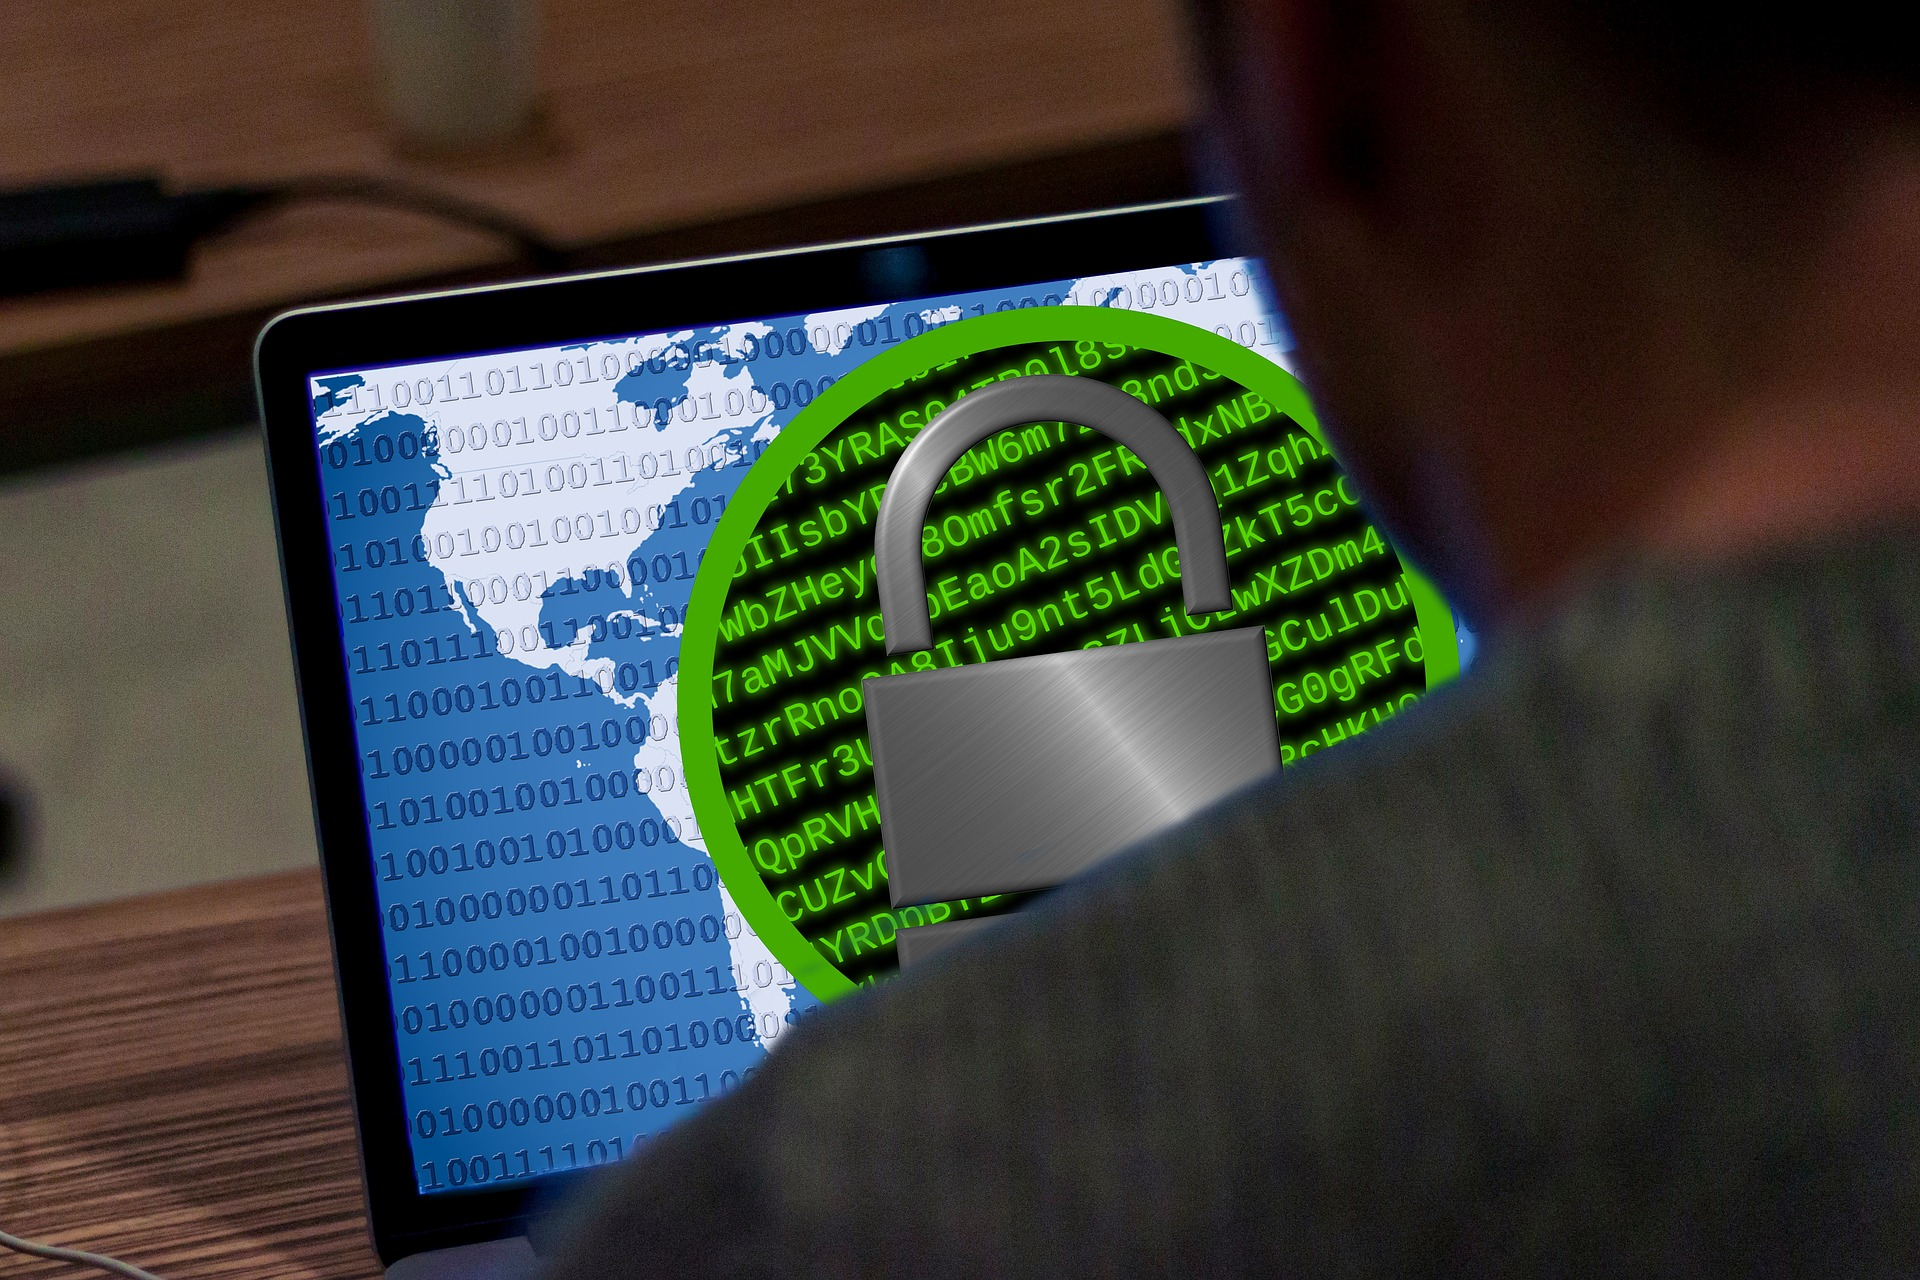 How to avoid a Ransomeware attack